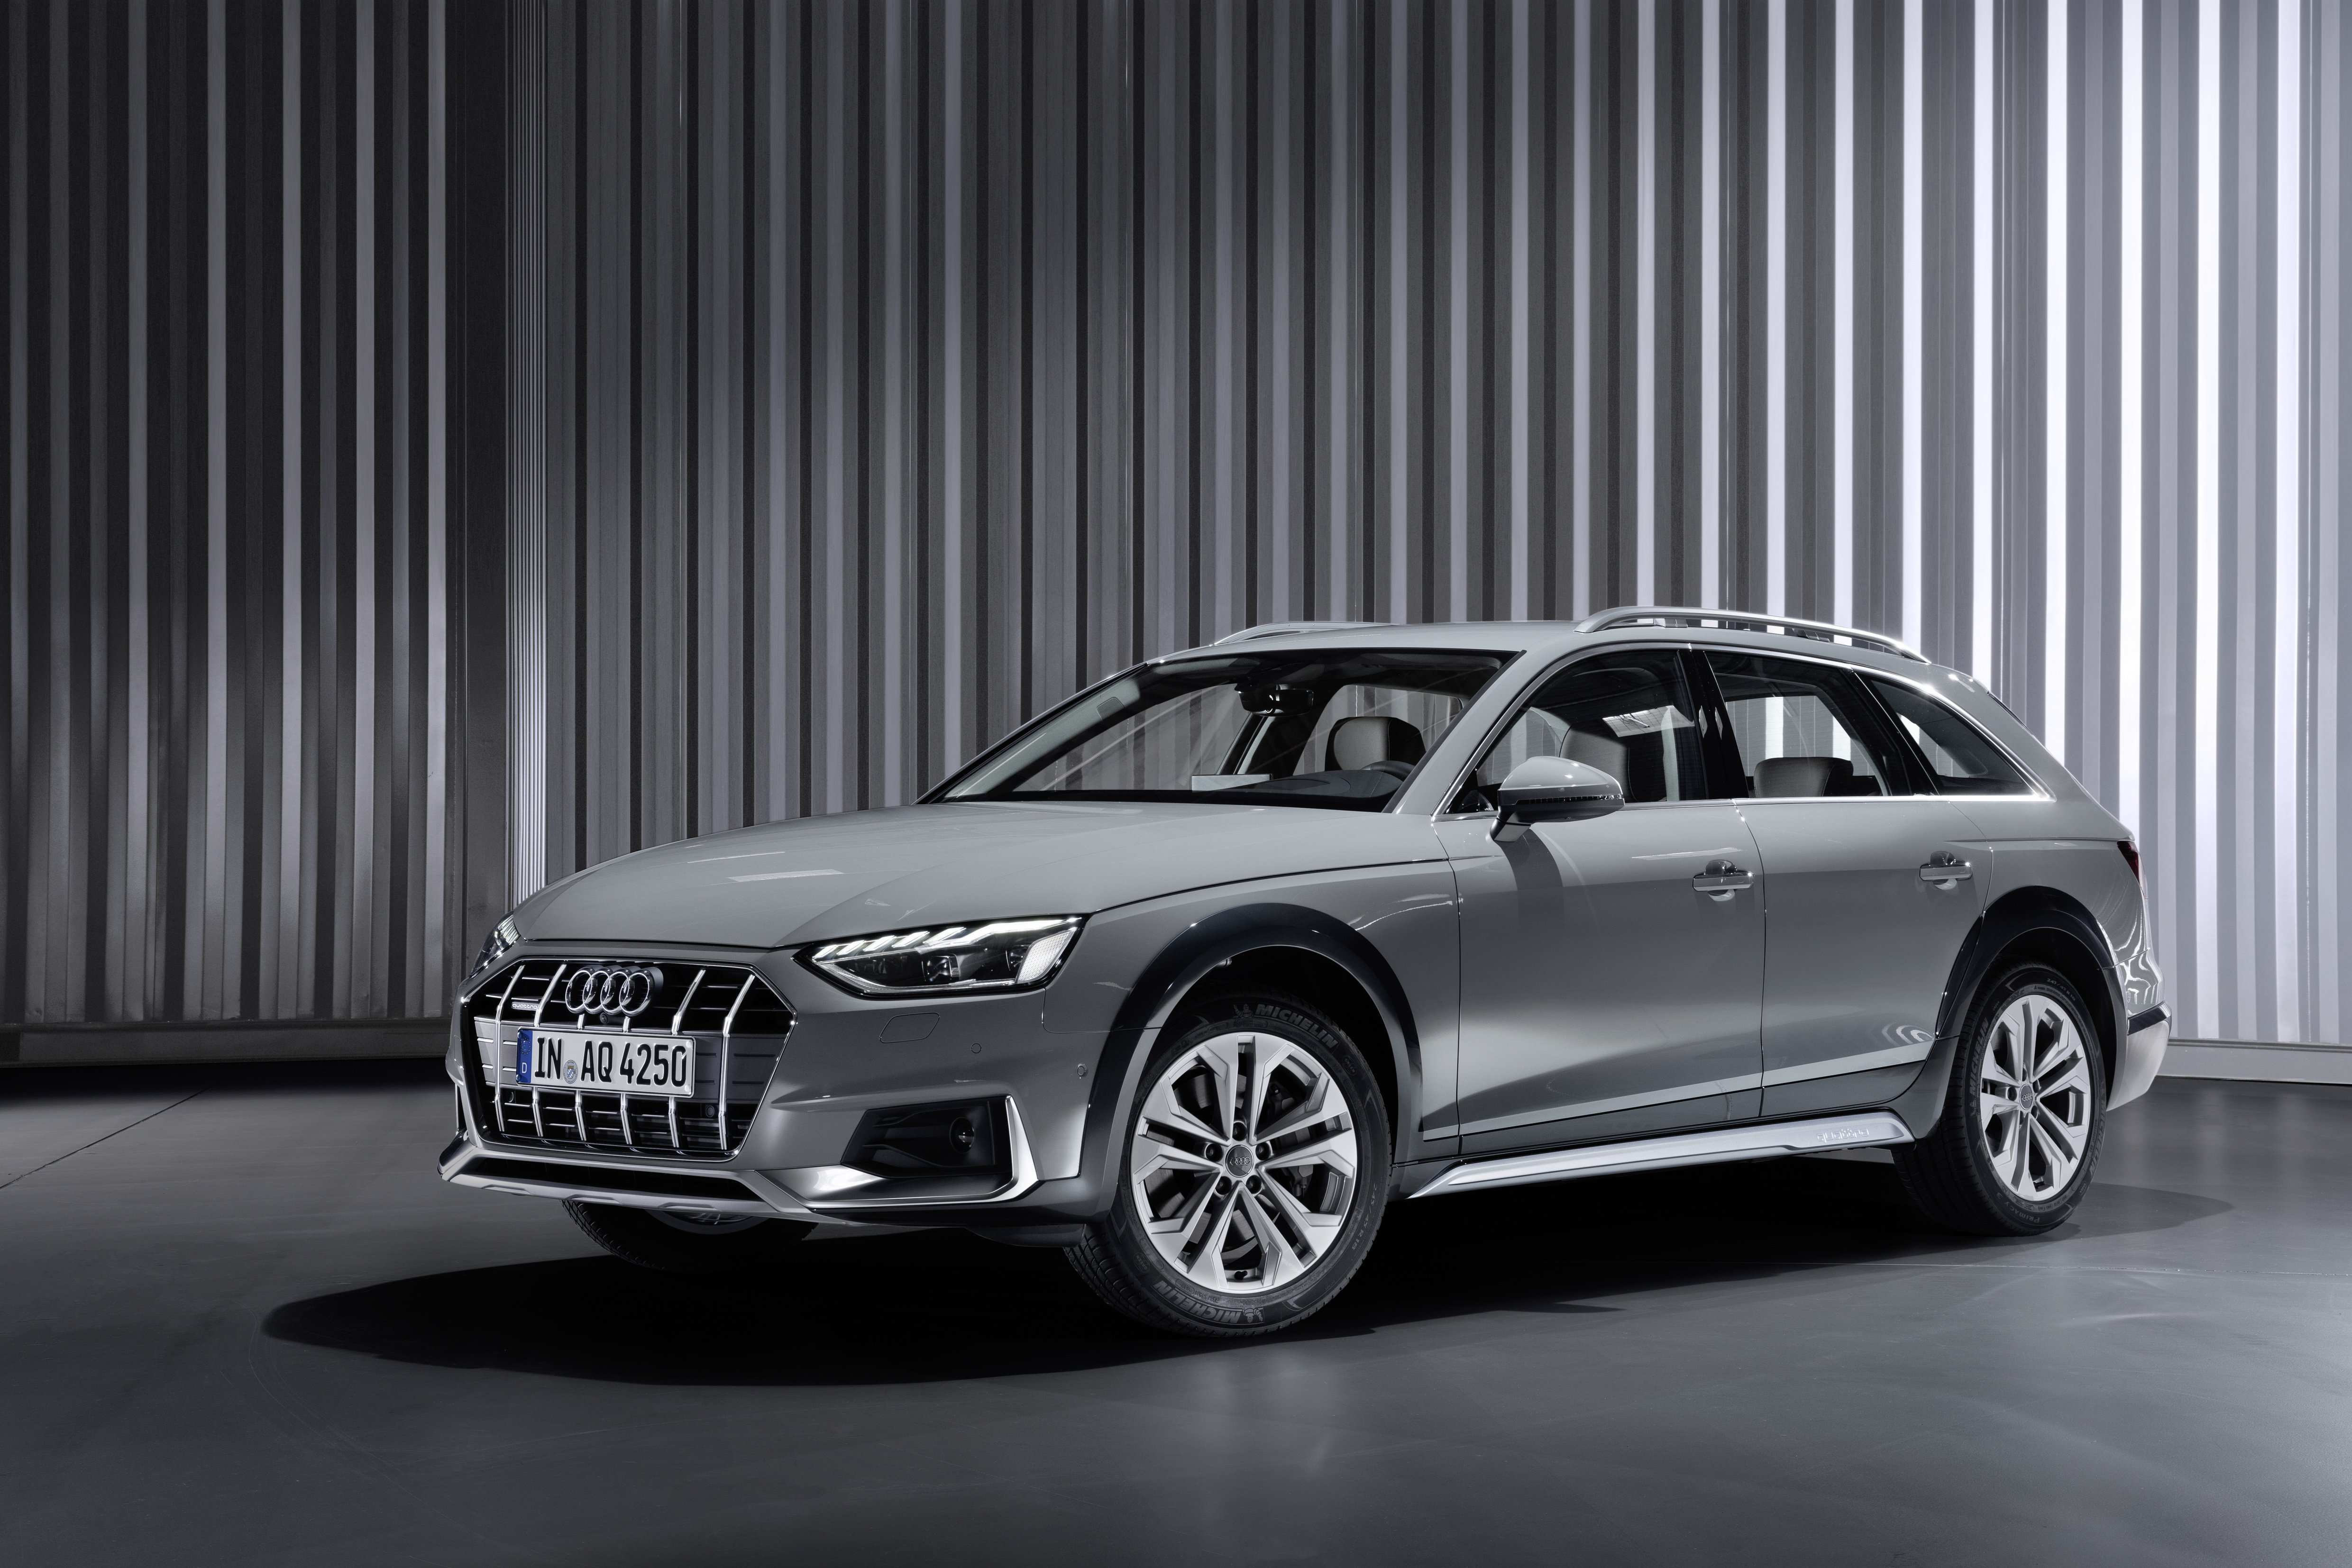 45 New 2020 Audi Q6 Photos